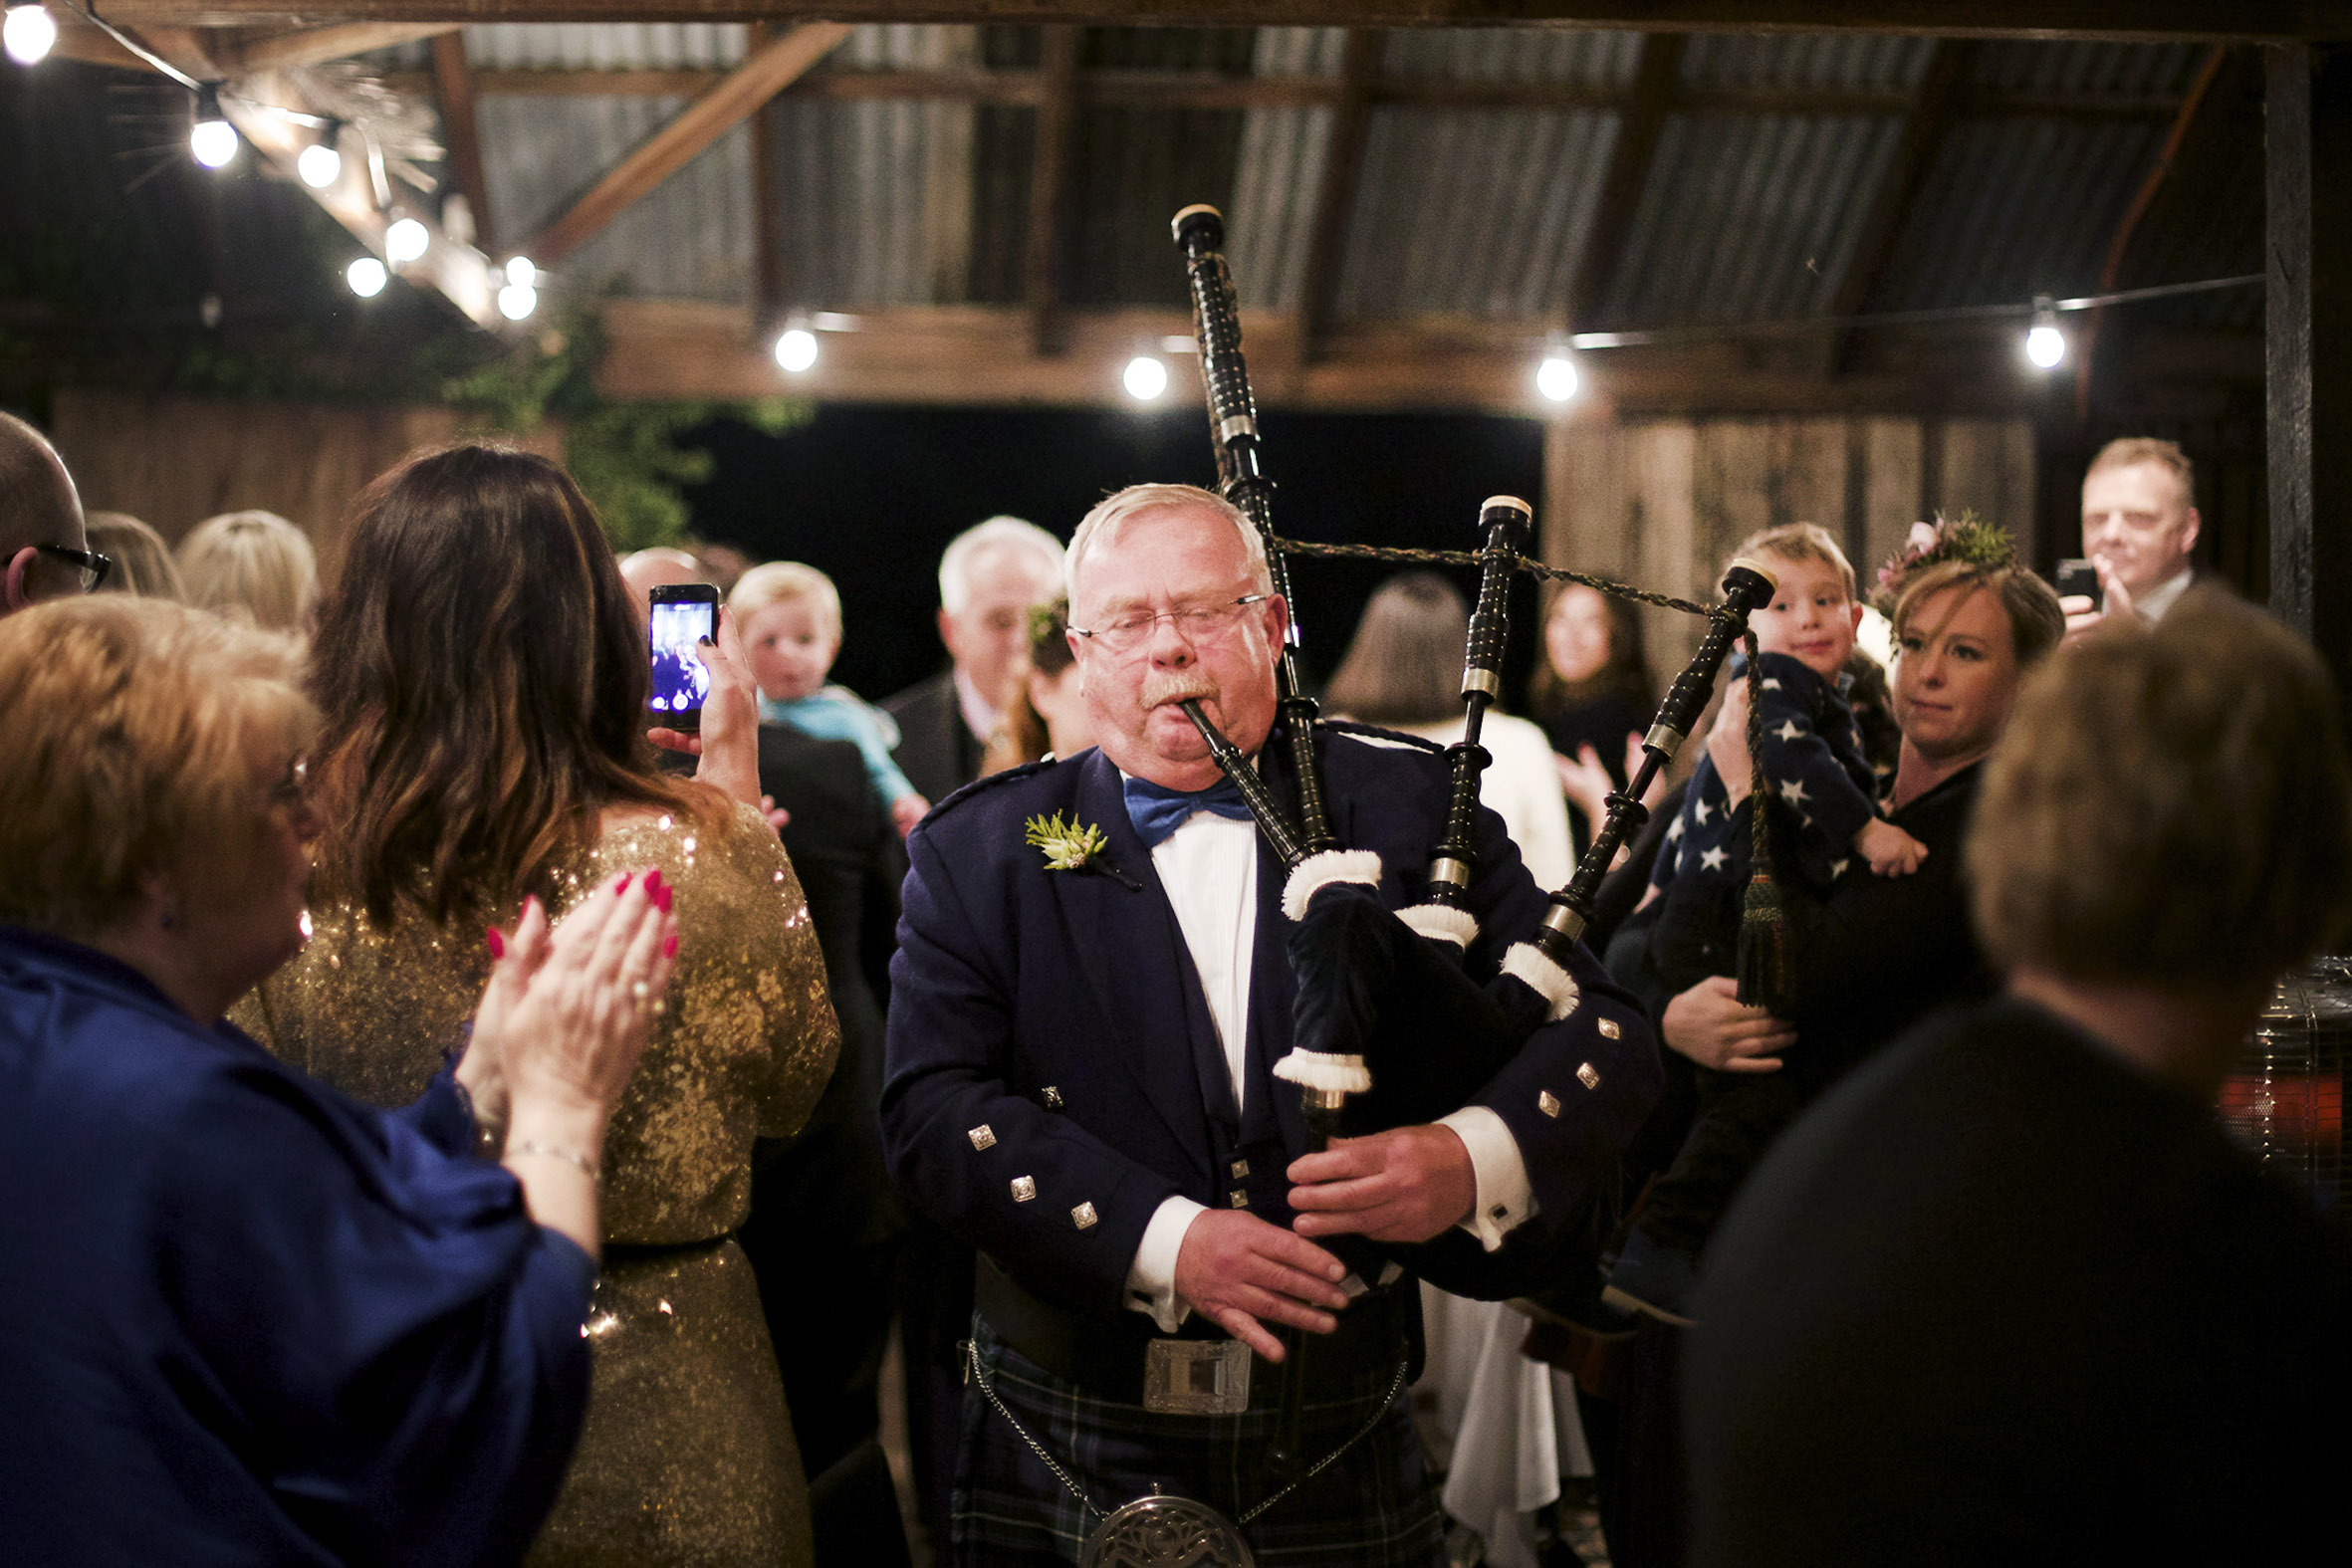 melbourne scottish wedding.jpg